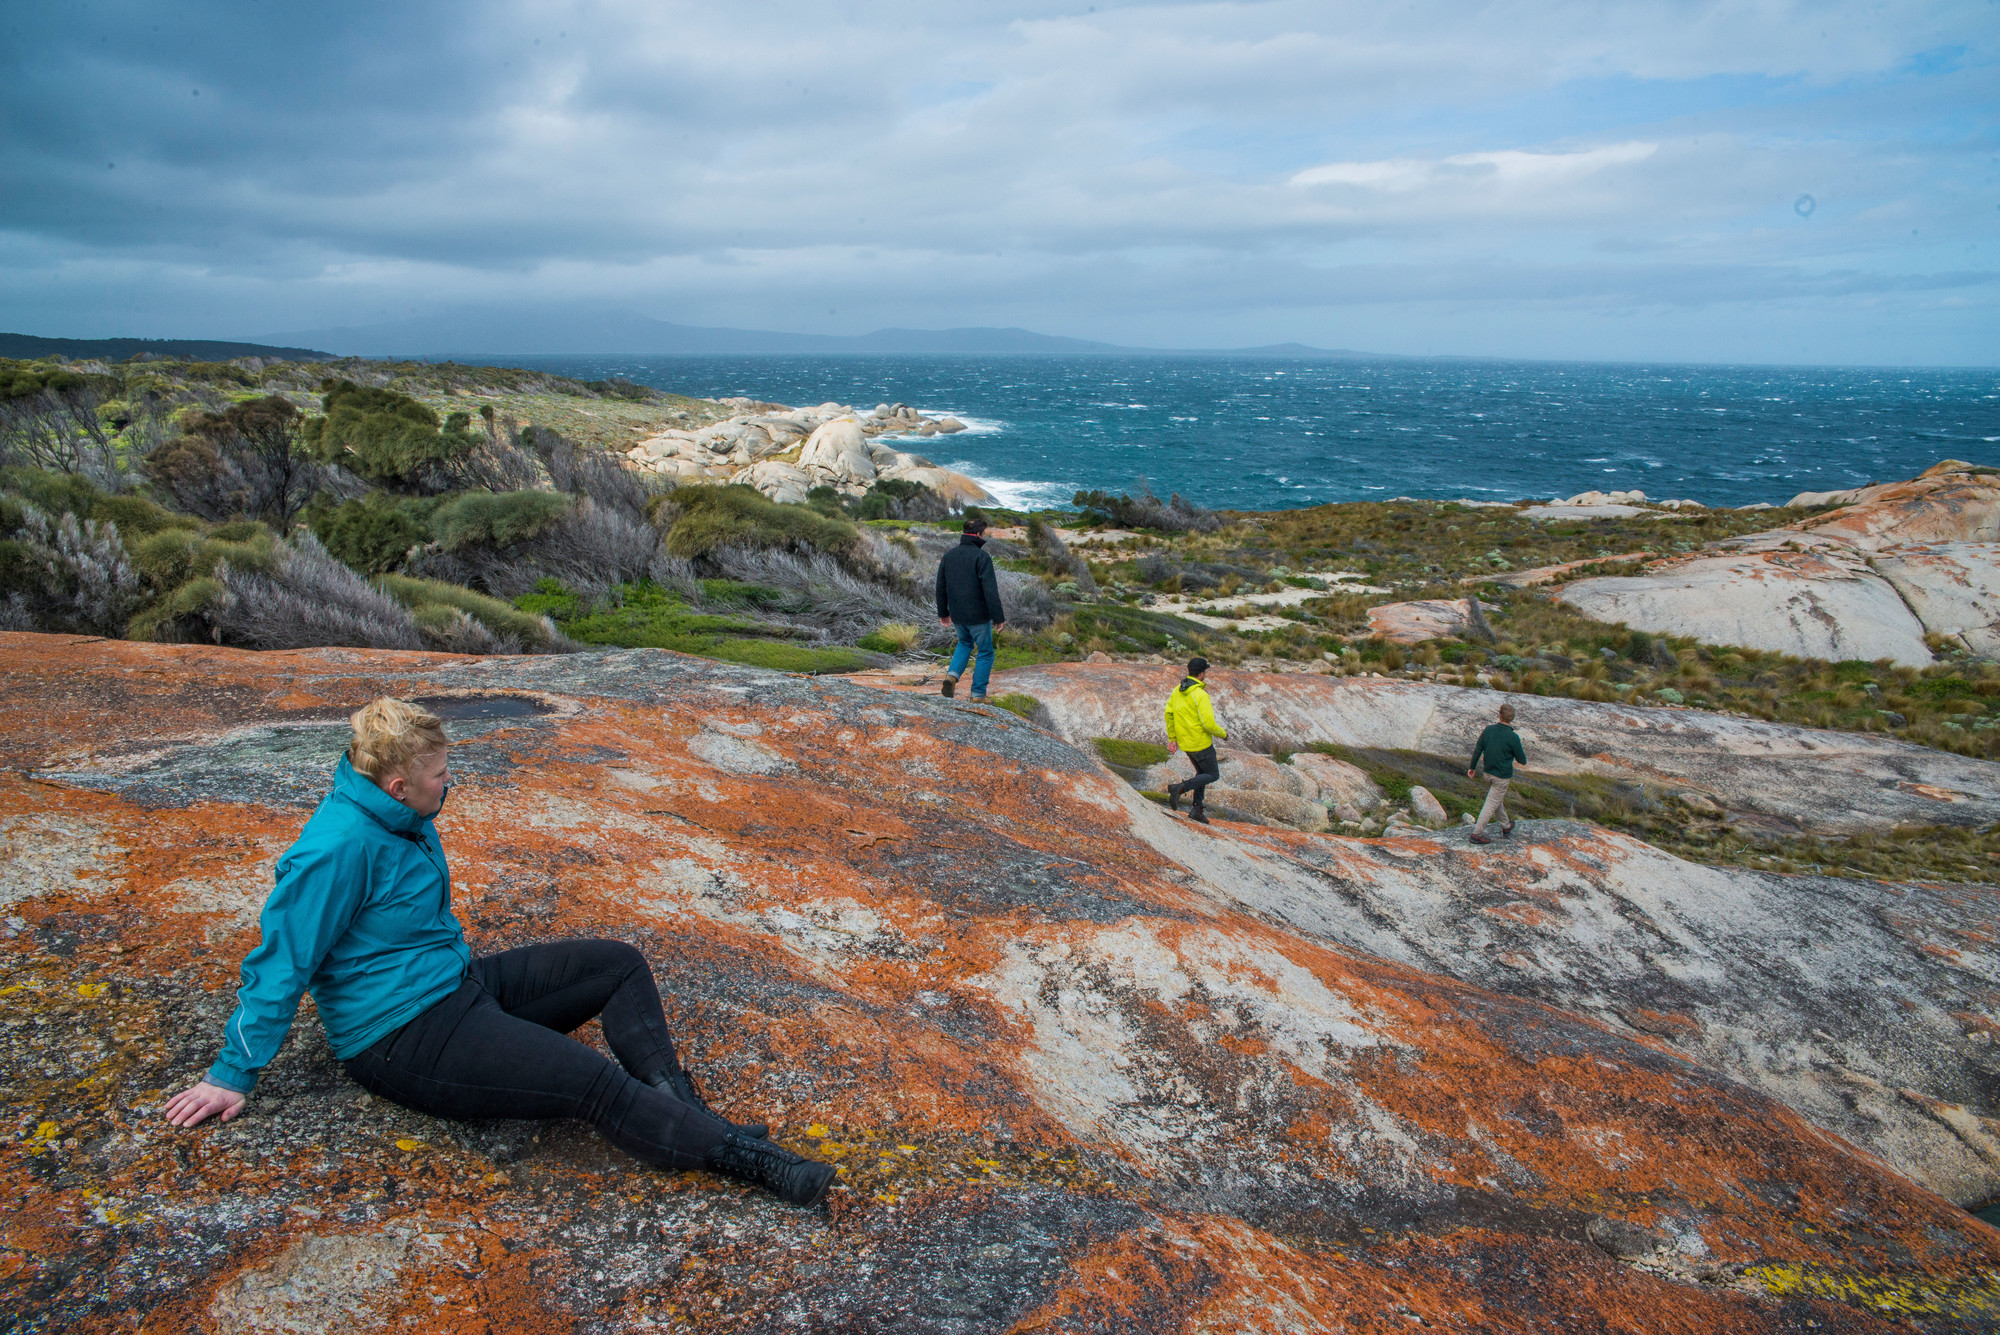 Trousers Point Walk, people sitting and walking on granite boulders, overlooking ocean, Flinders Island